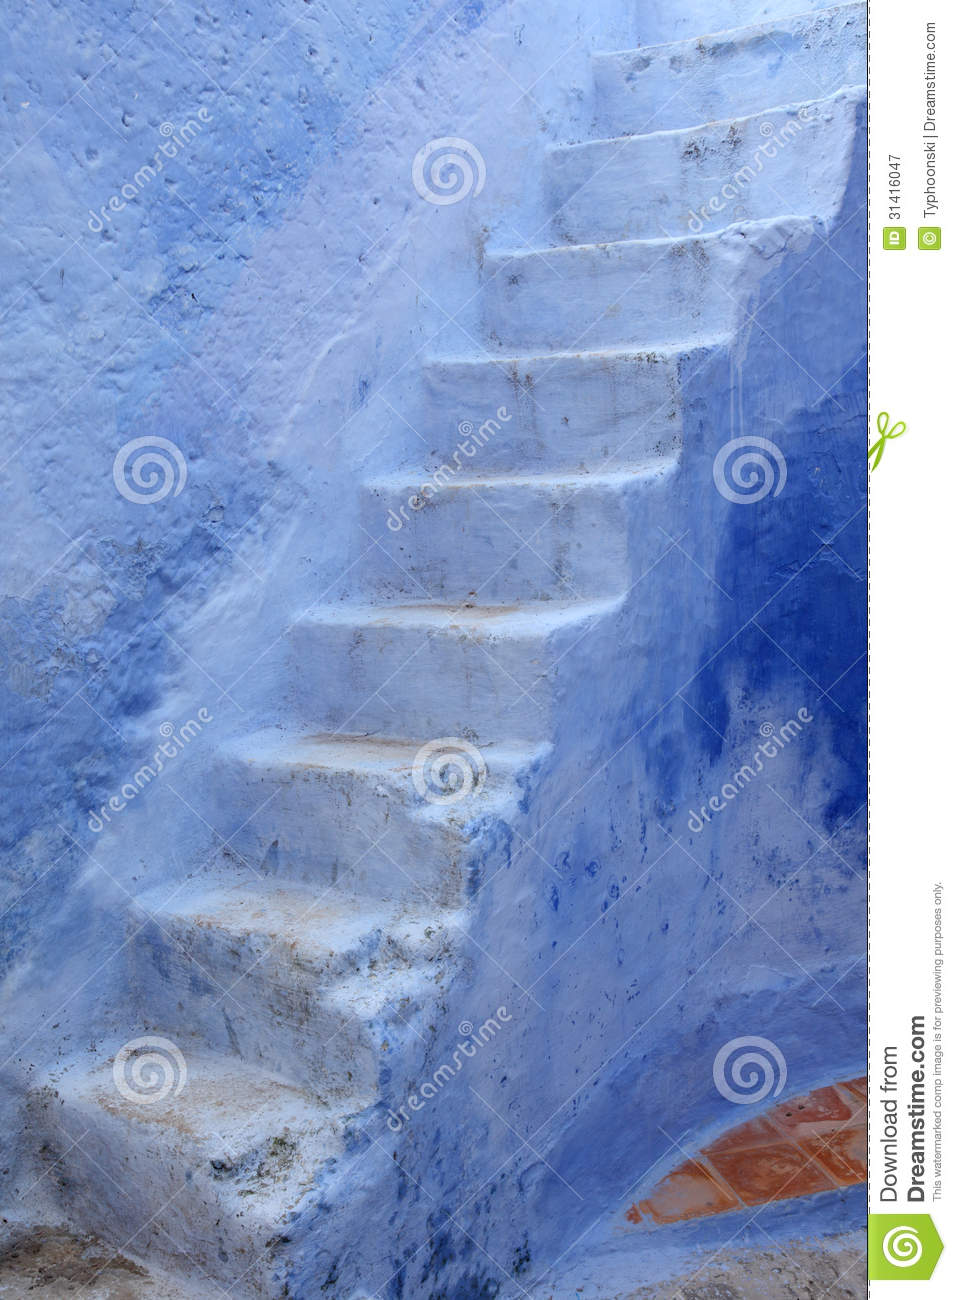 Blue Steps To Success: Blue Steps In Chefchaouen, Morocco Royalty Free Stock